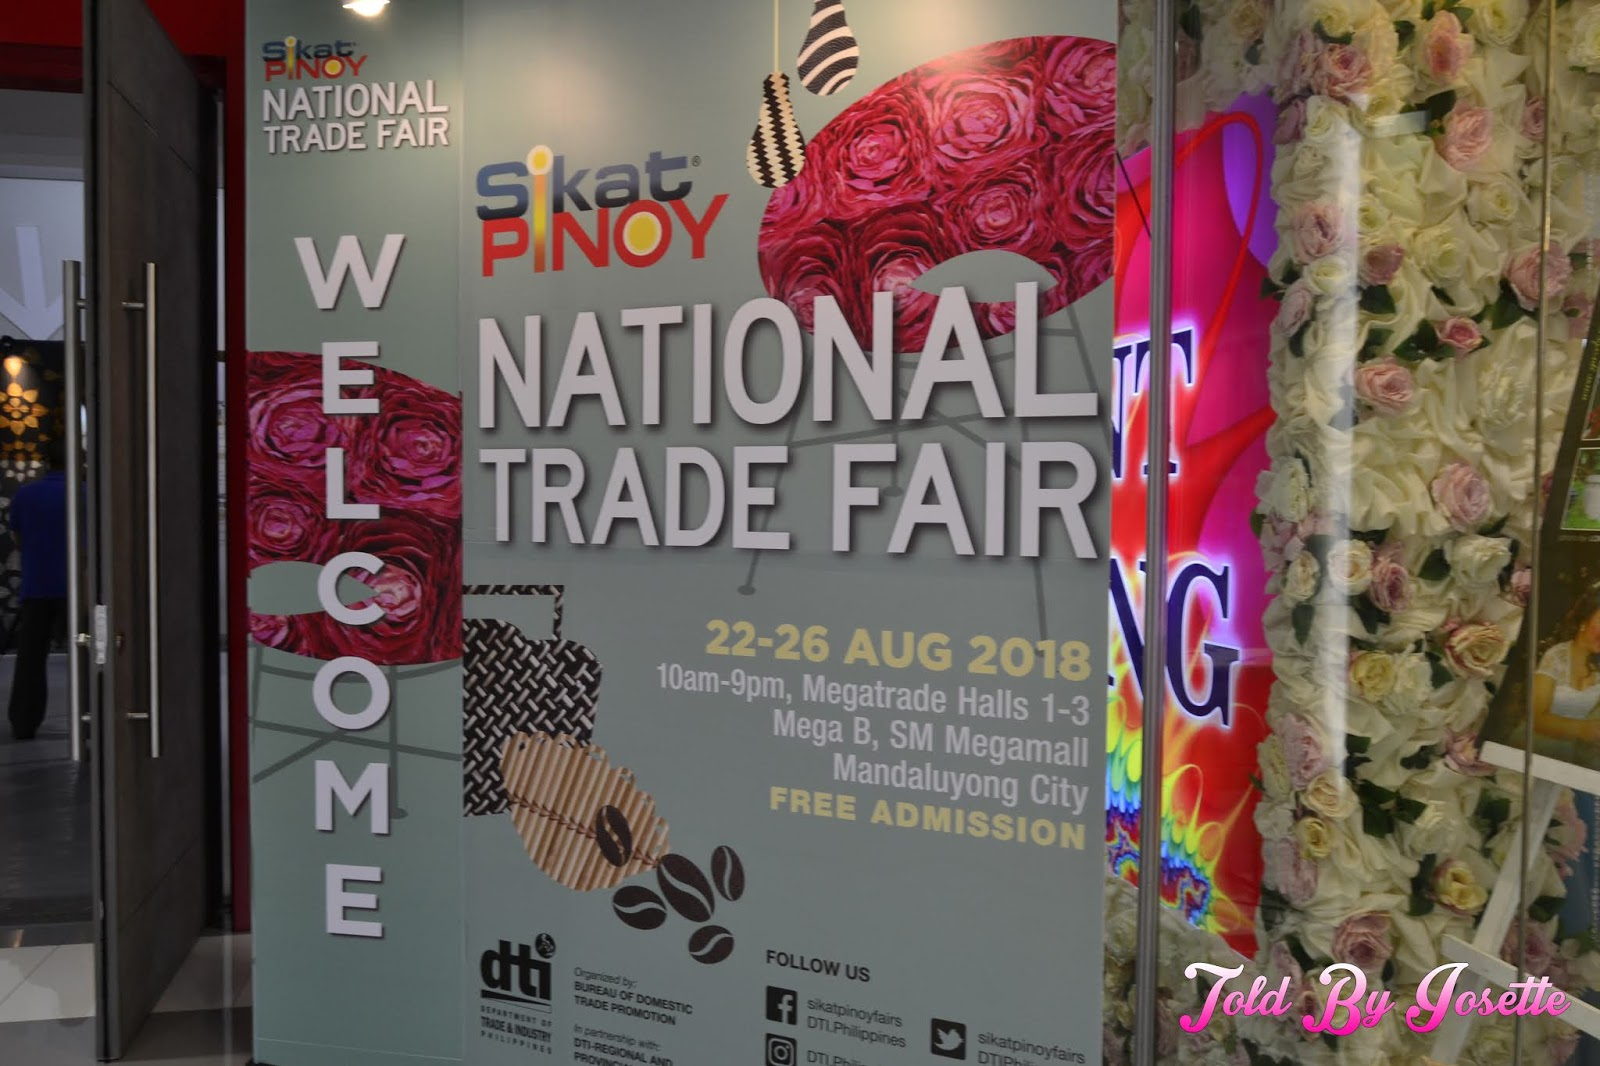 Sikat Pinoy National Trade Fair 2018: What keeps me going back?